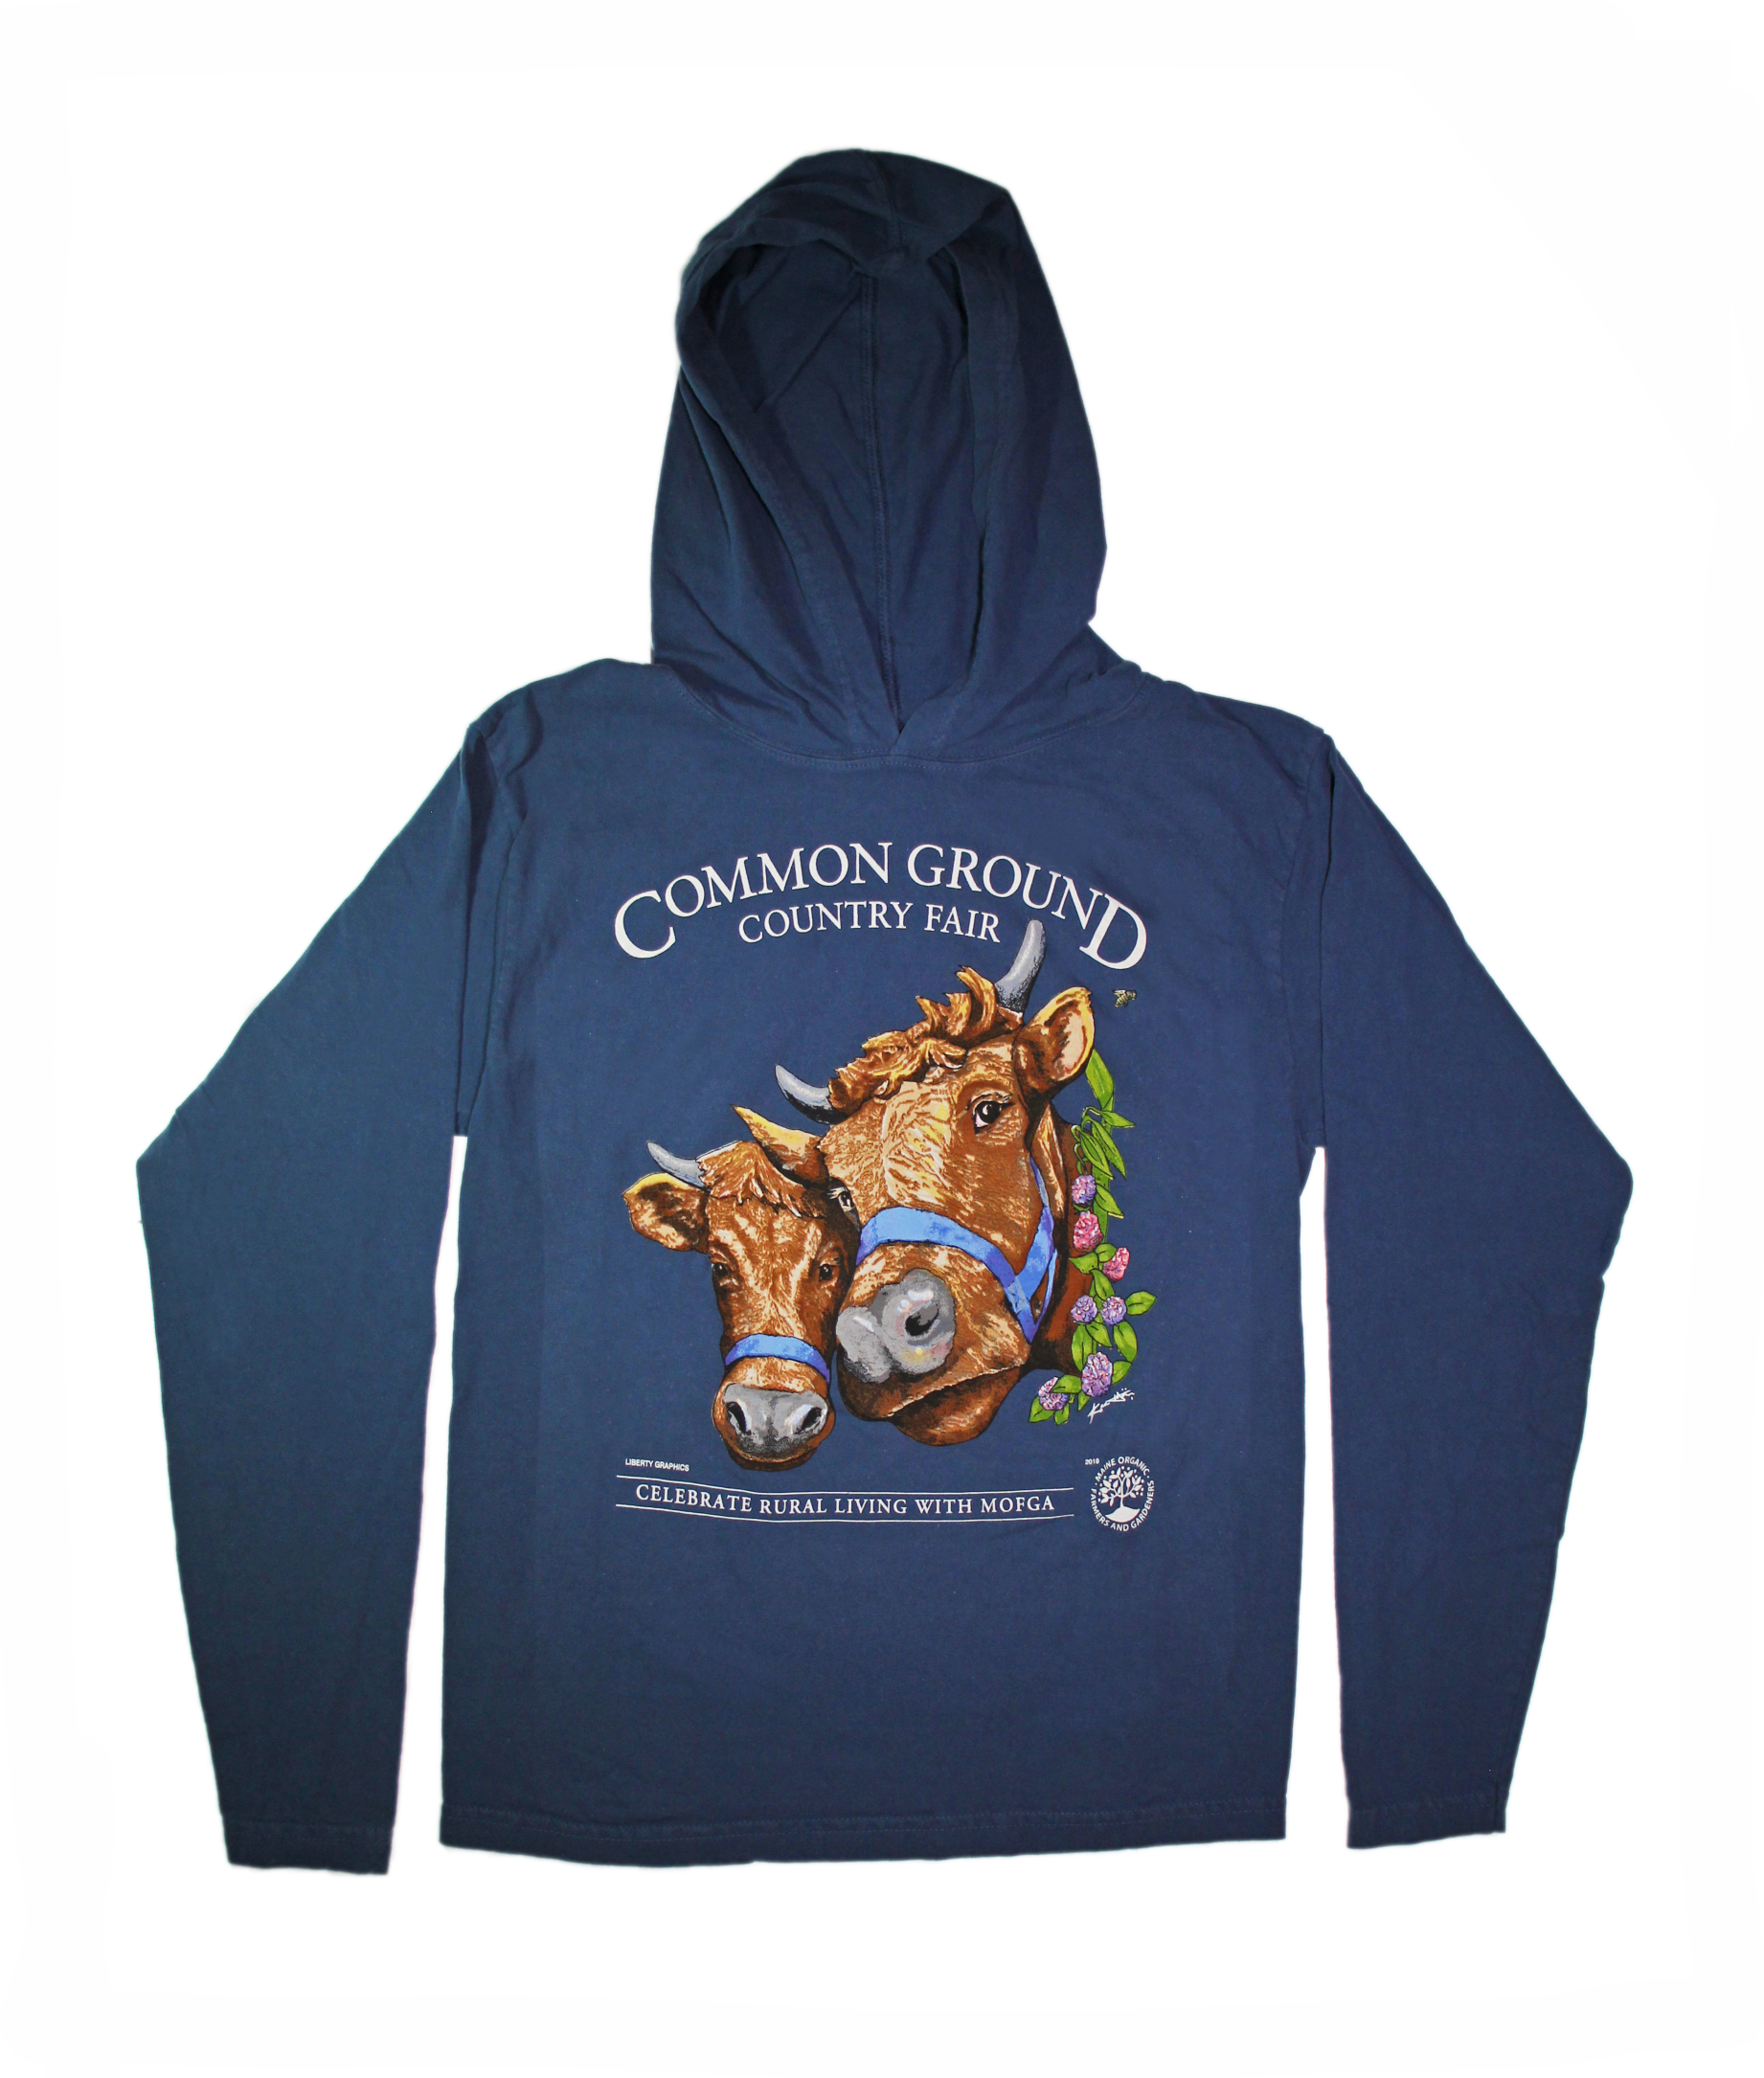 2019 Common Ground Country Fair Adult Hooded T-shirt. Dexter Heifers design. Color bluestone or dark blue